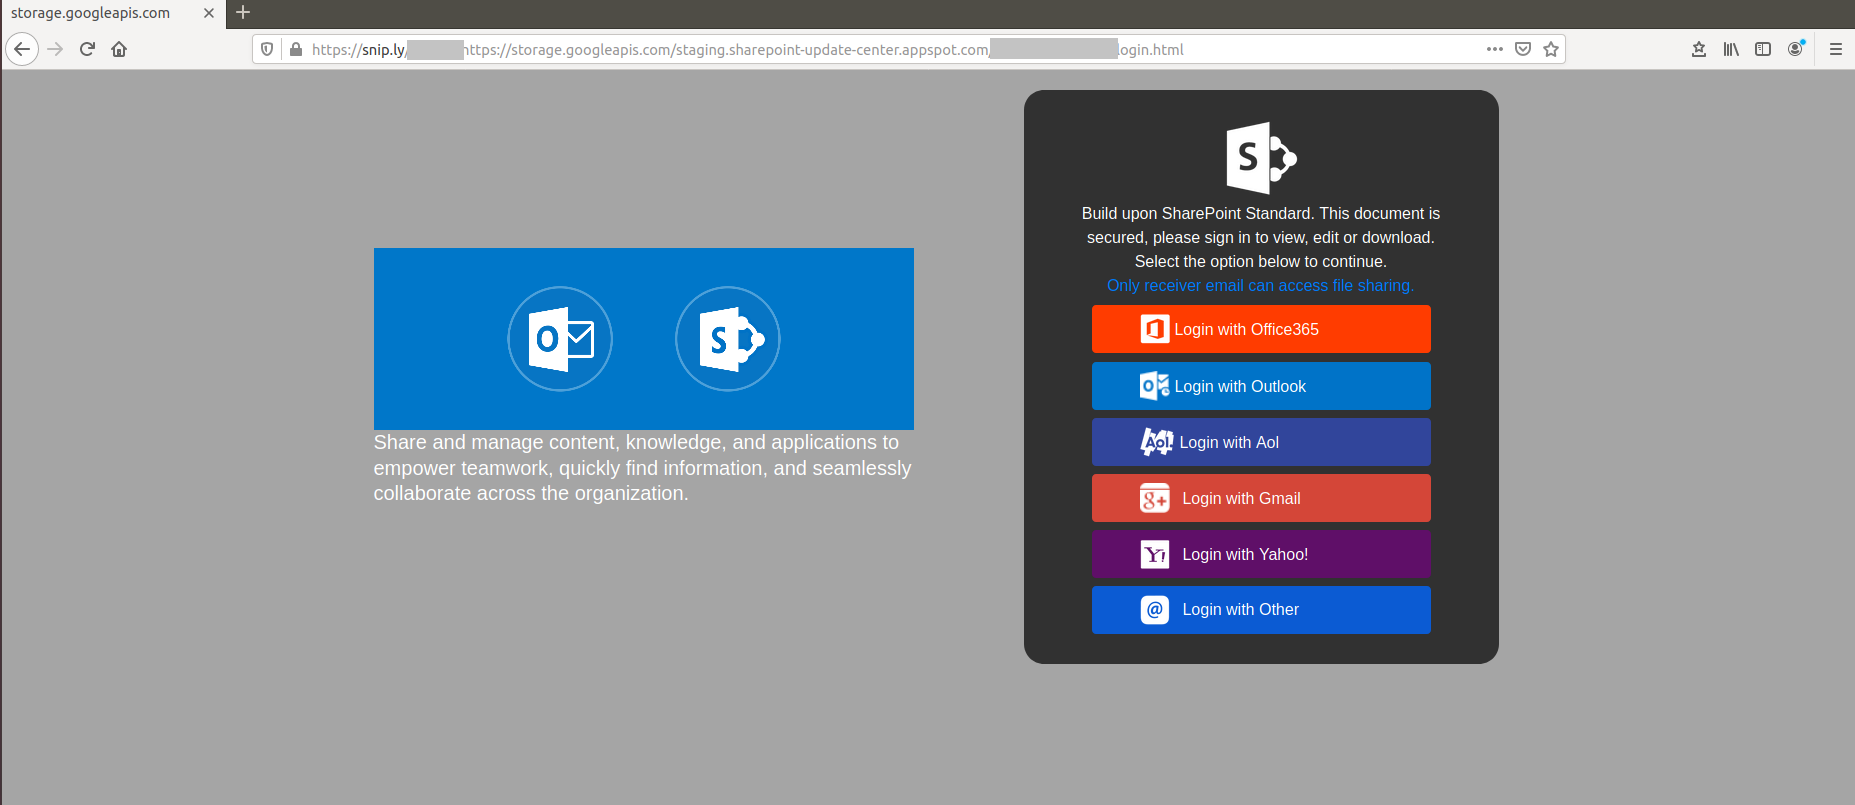 Phishing campaign sharepoint landing page